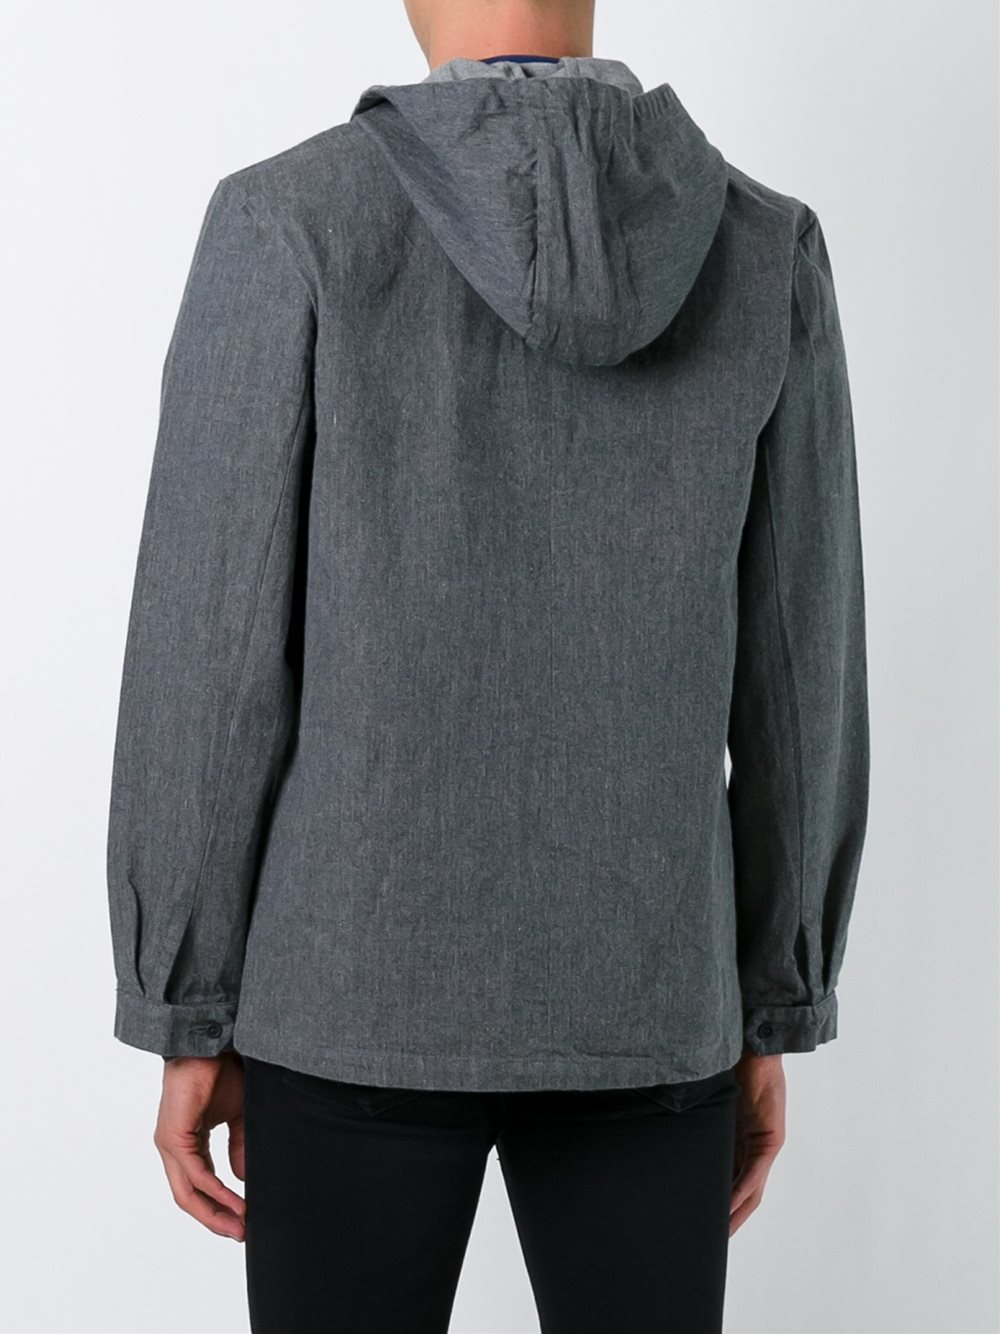 Sunnei Cotton Boxy Hooded Jacket in Grey (Grey) for Men